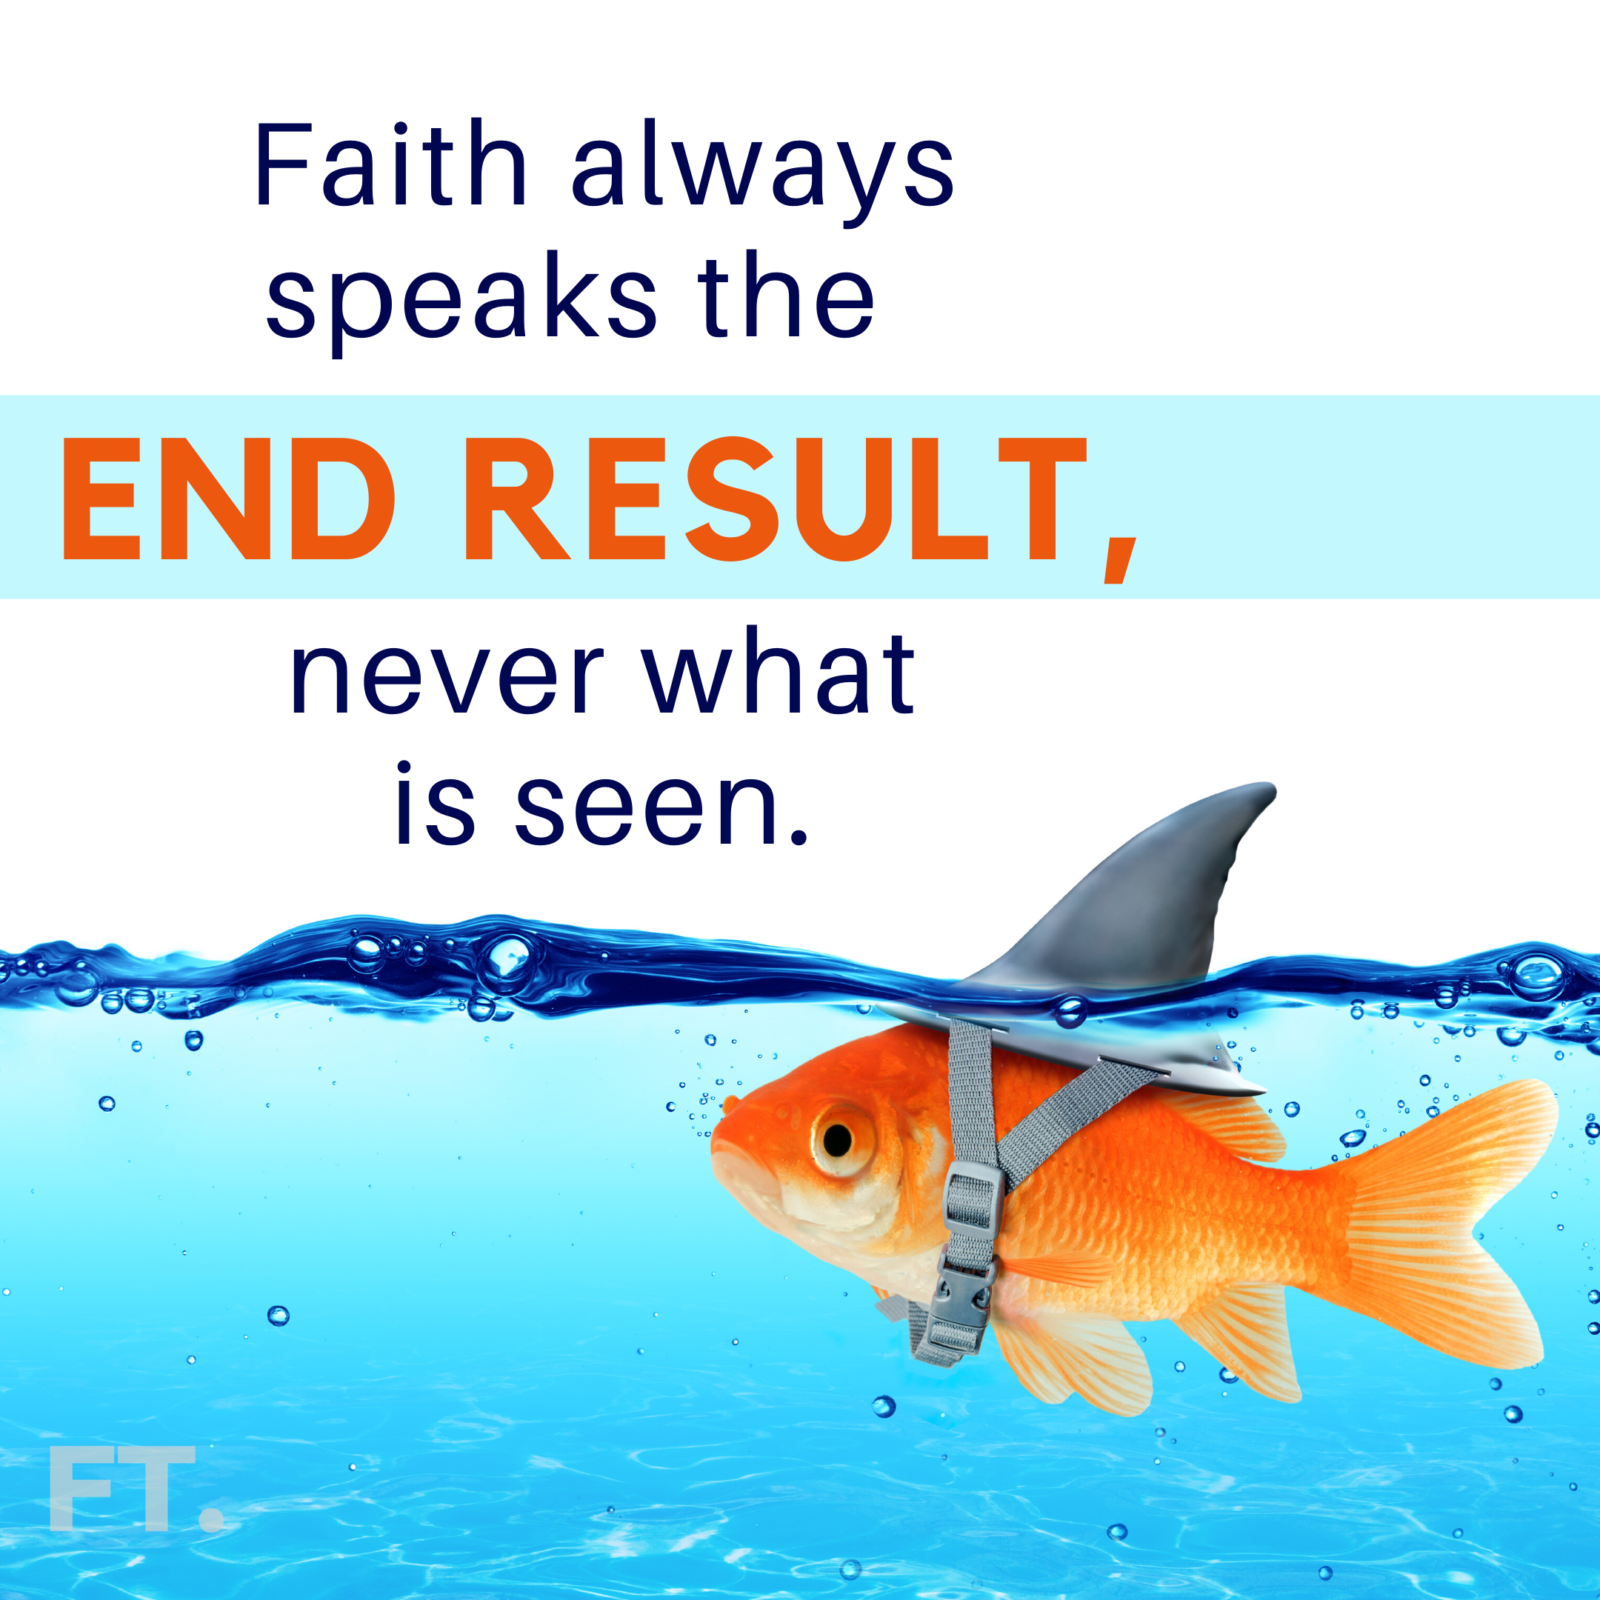 Faith always speaks the end result, never what is seen!